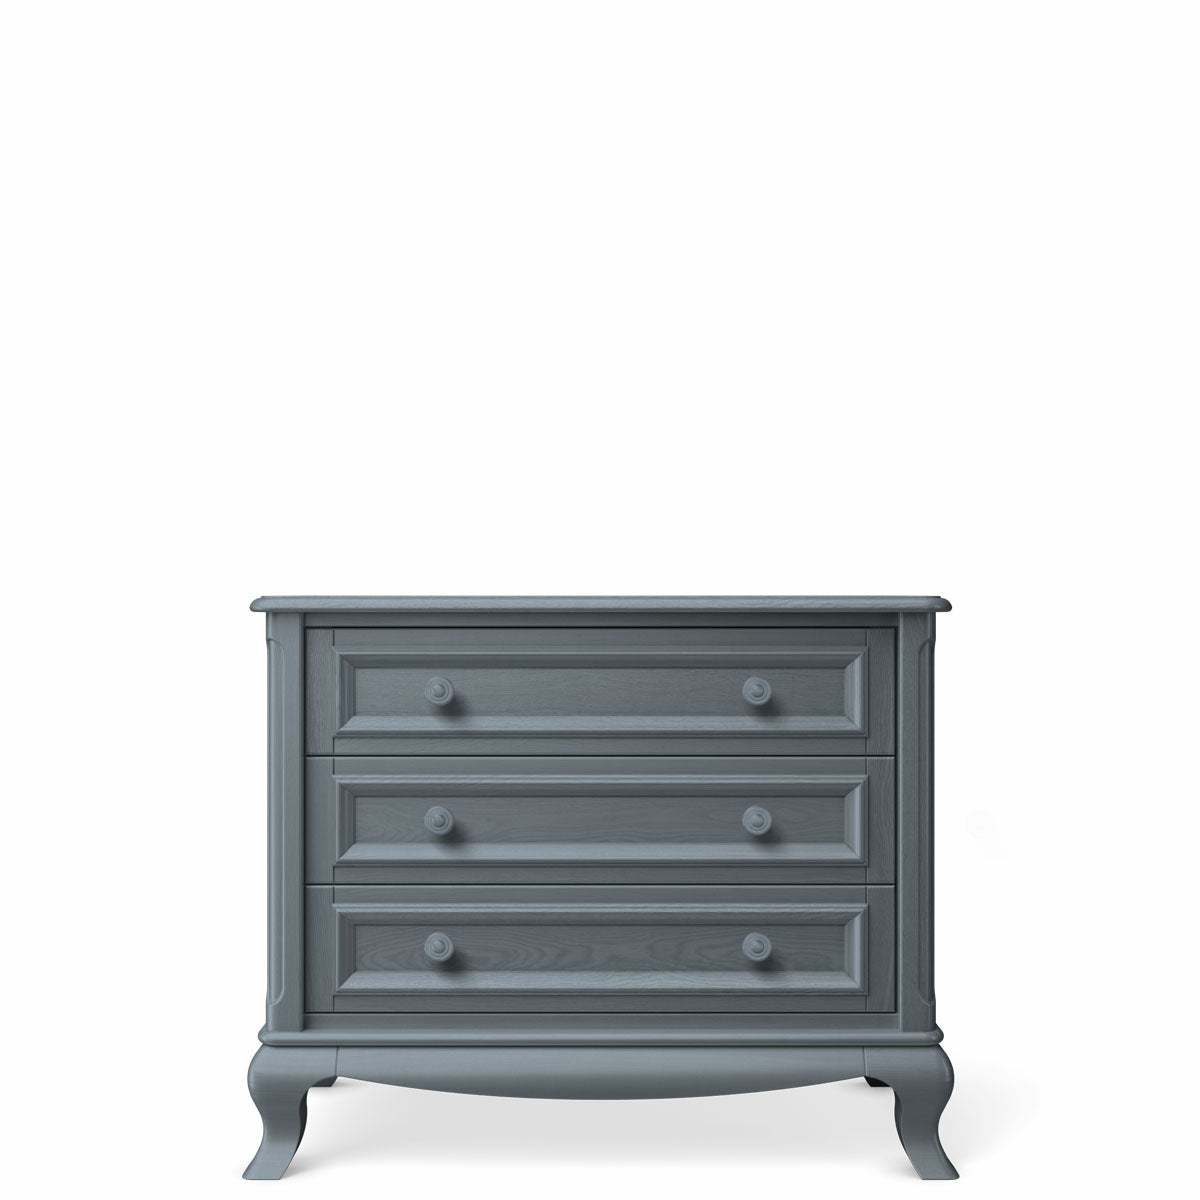 Romina Antonio Single Dresser